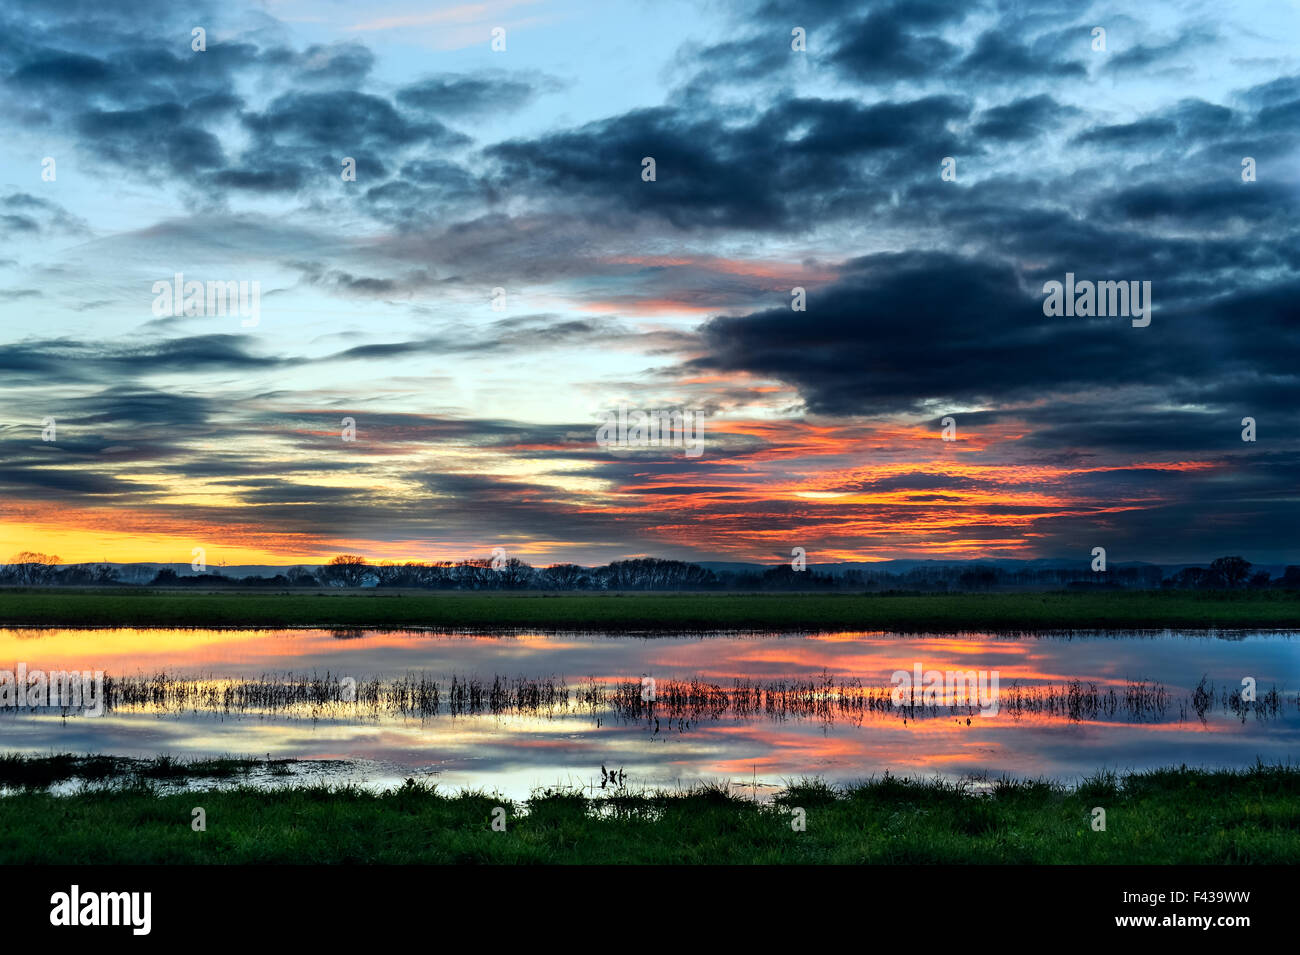 Spectacle clouds Sunset Reflection - Stock Image